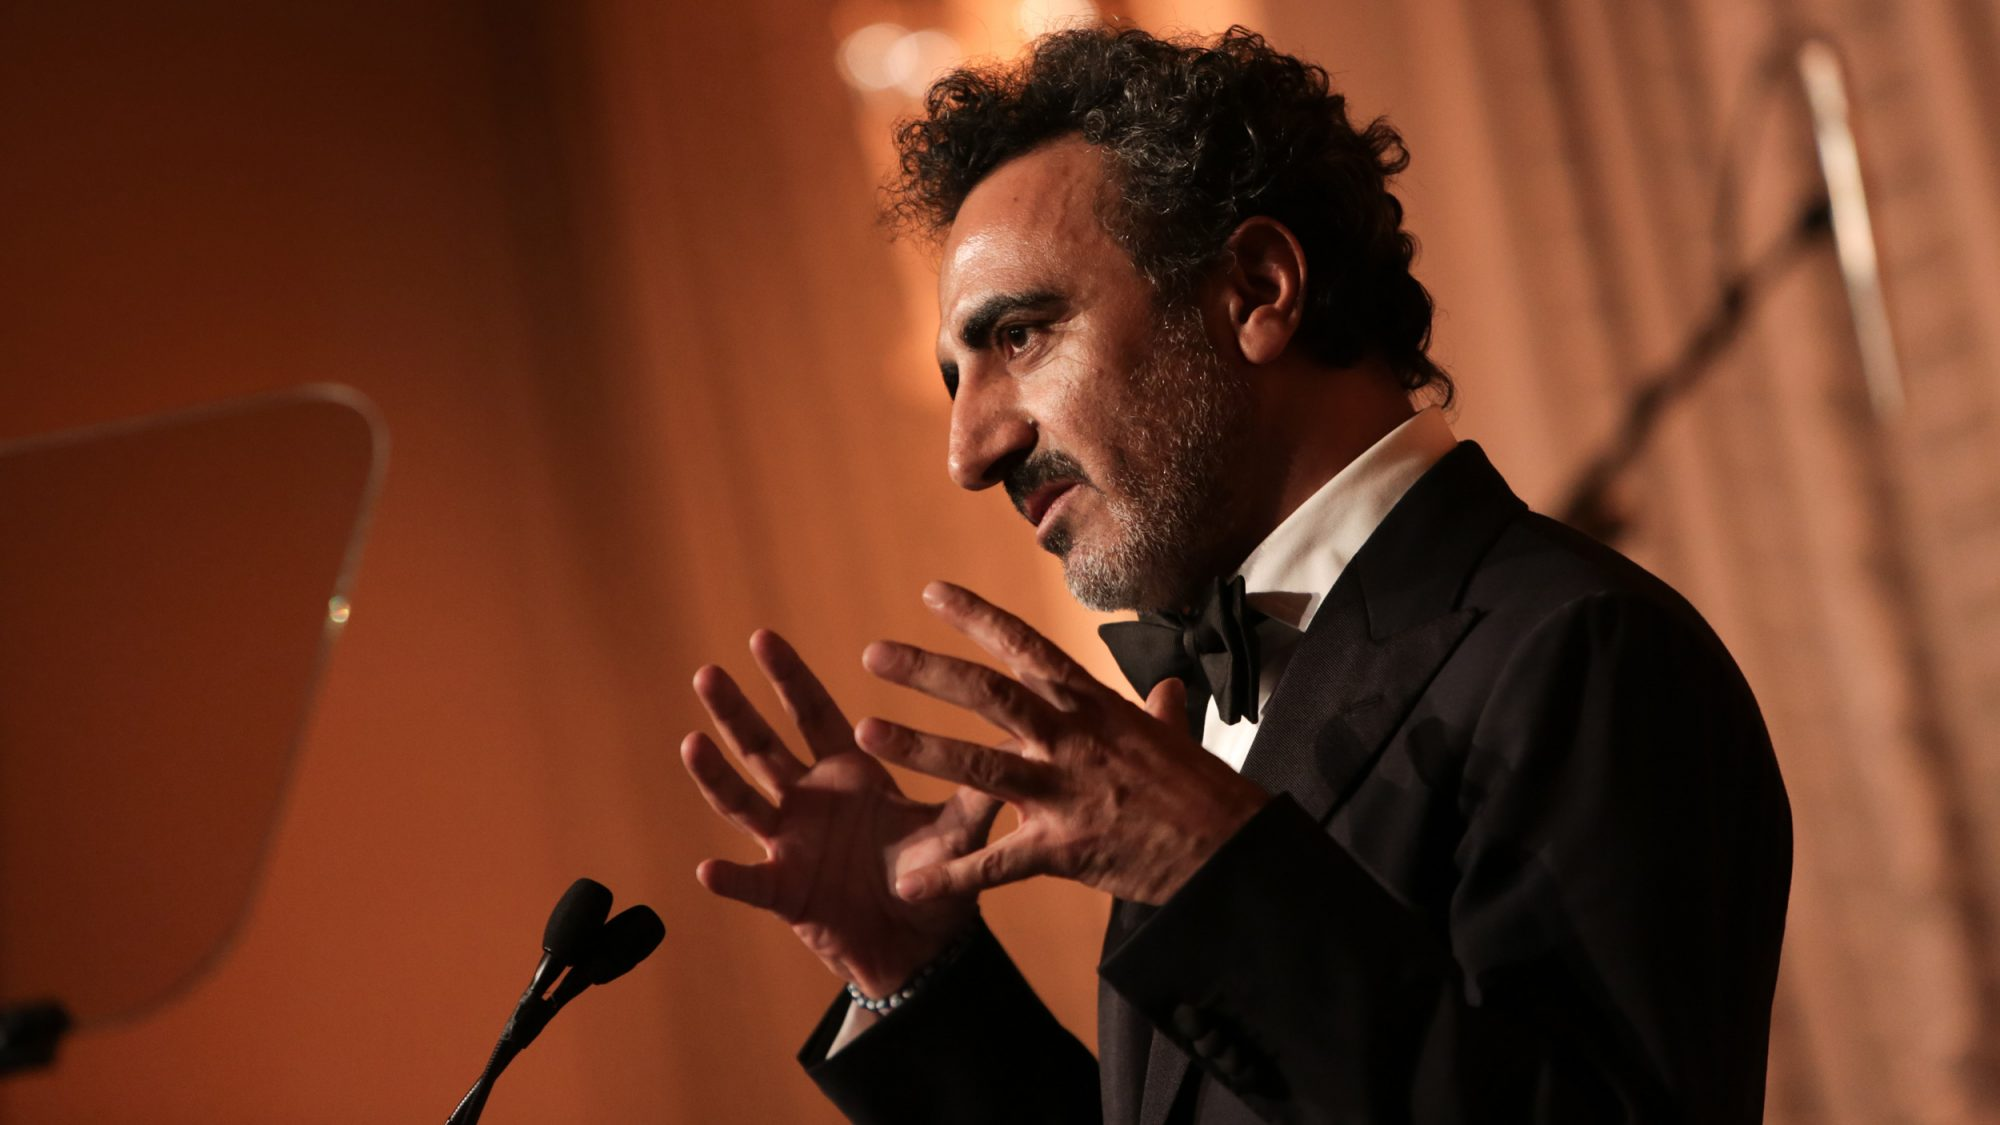 Chobani Founder Comes Under Fire for Being a Good Person